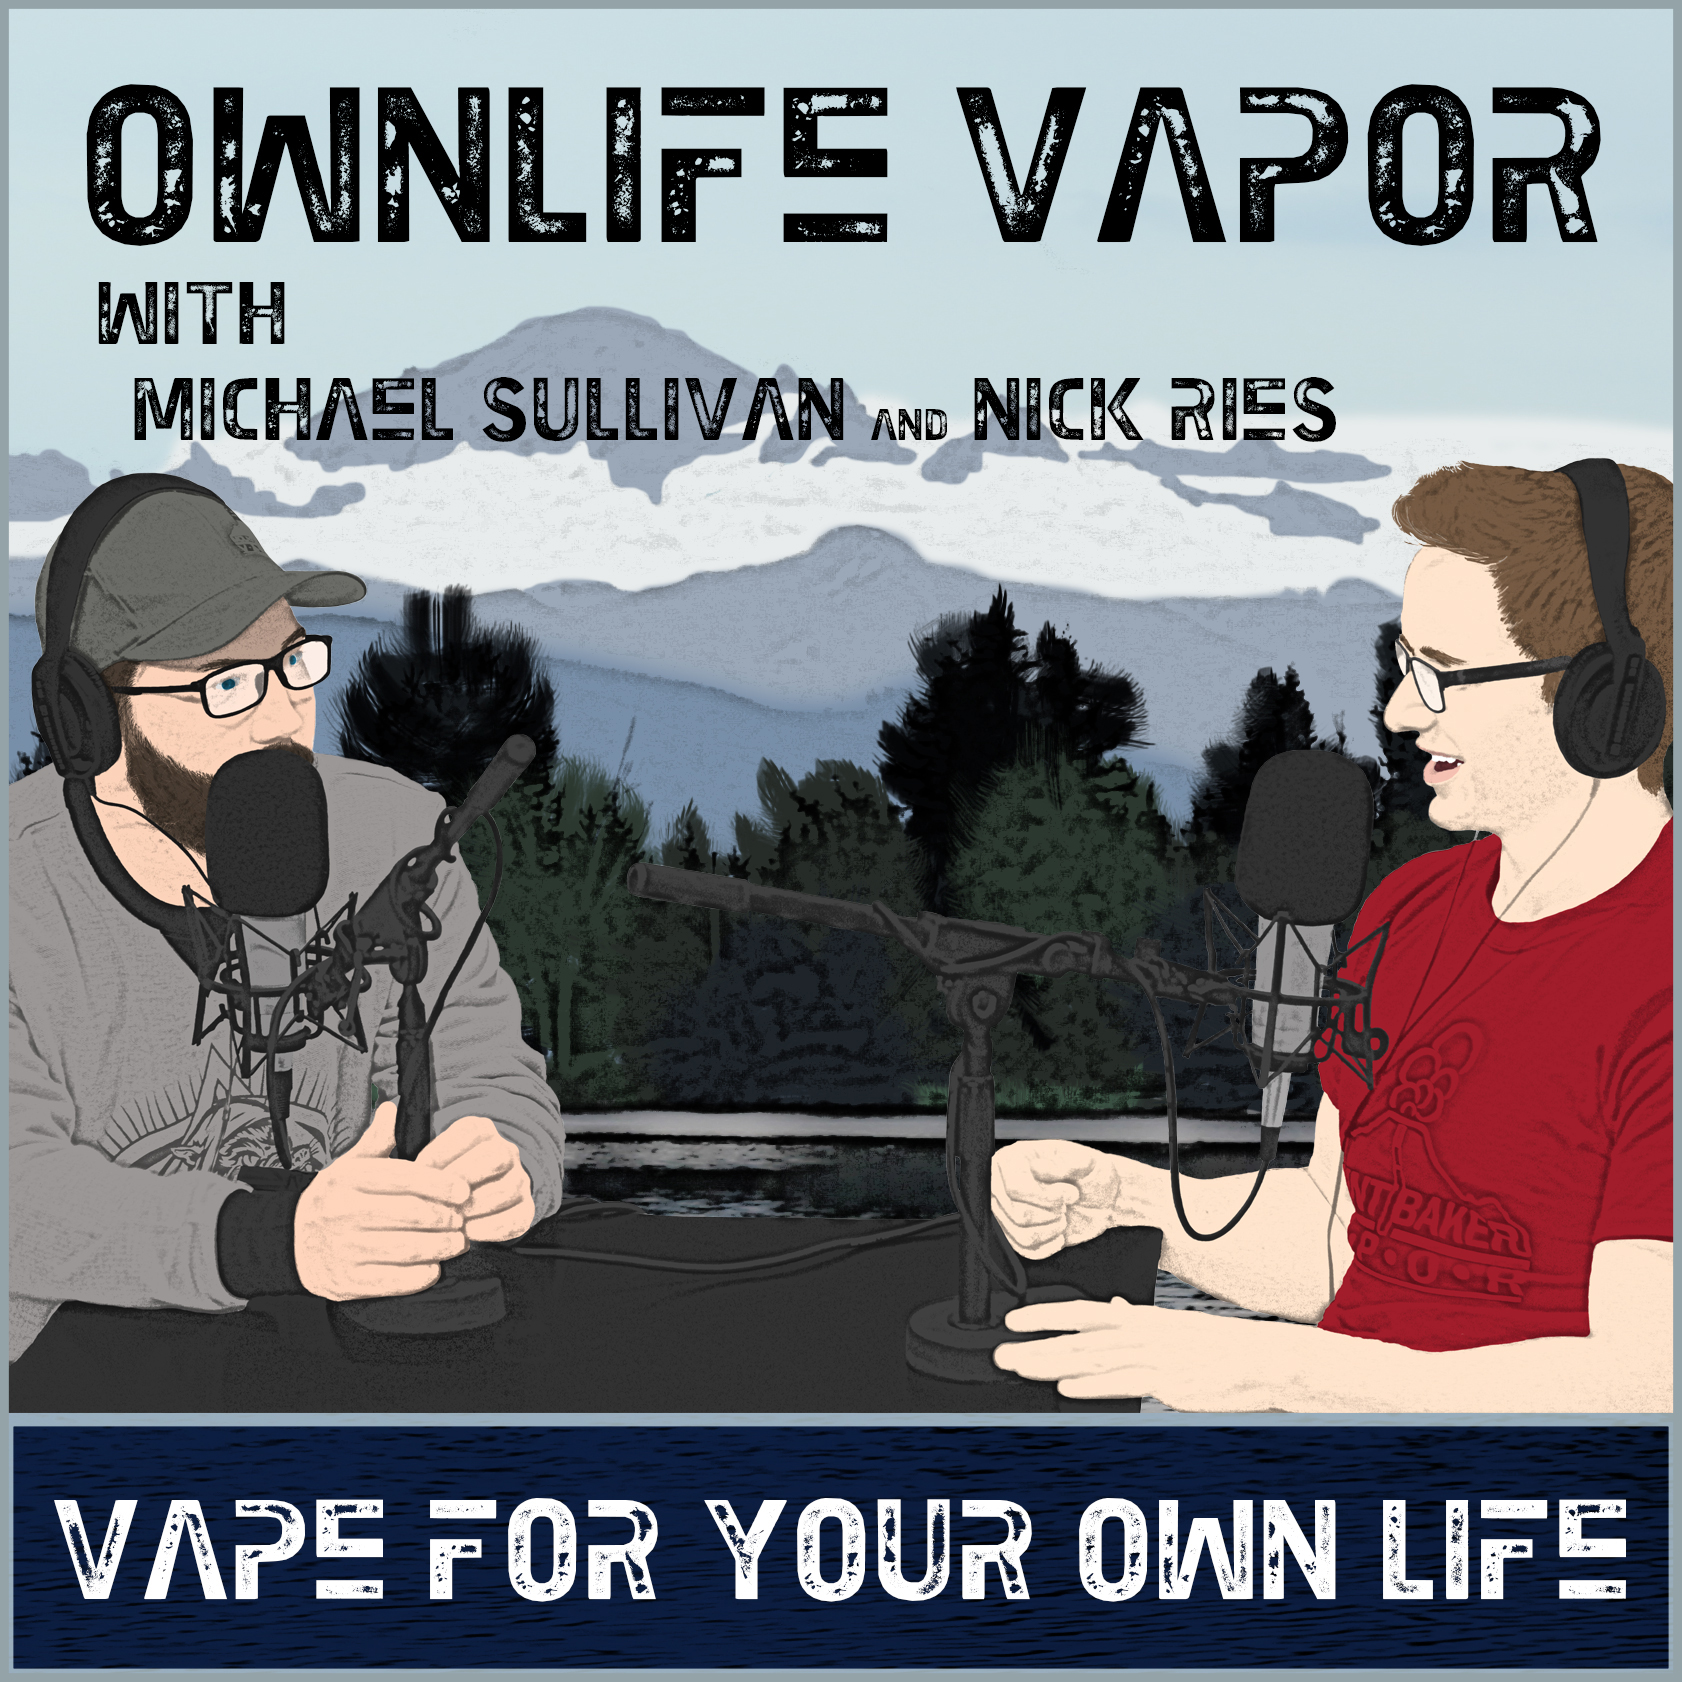 Episode 40 - Submarines, Clowns, and Vaping Bans